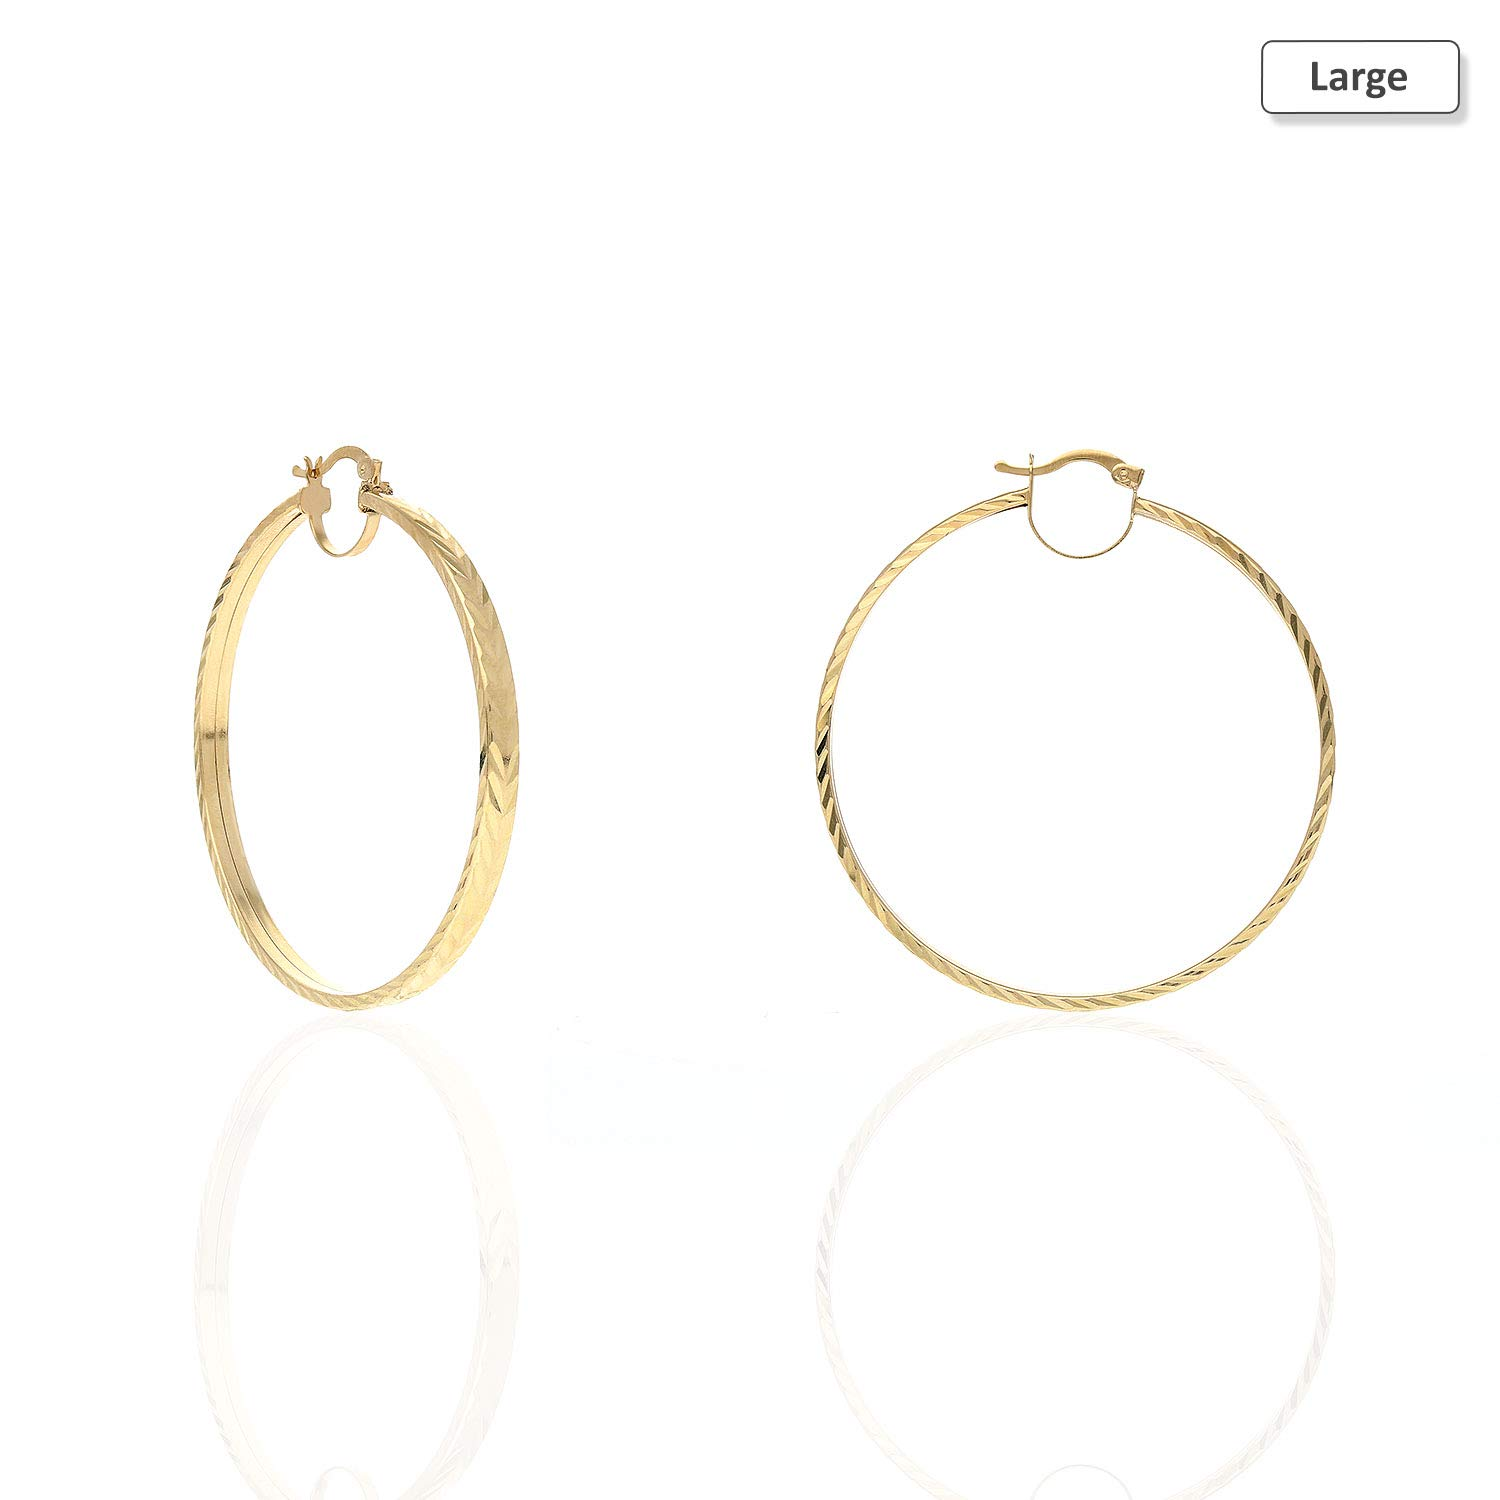 Large 14K Yellow Gold Flat Tube Diamond Cut Hoop Earrings 35mm 46mm 51mm